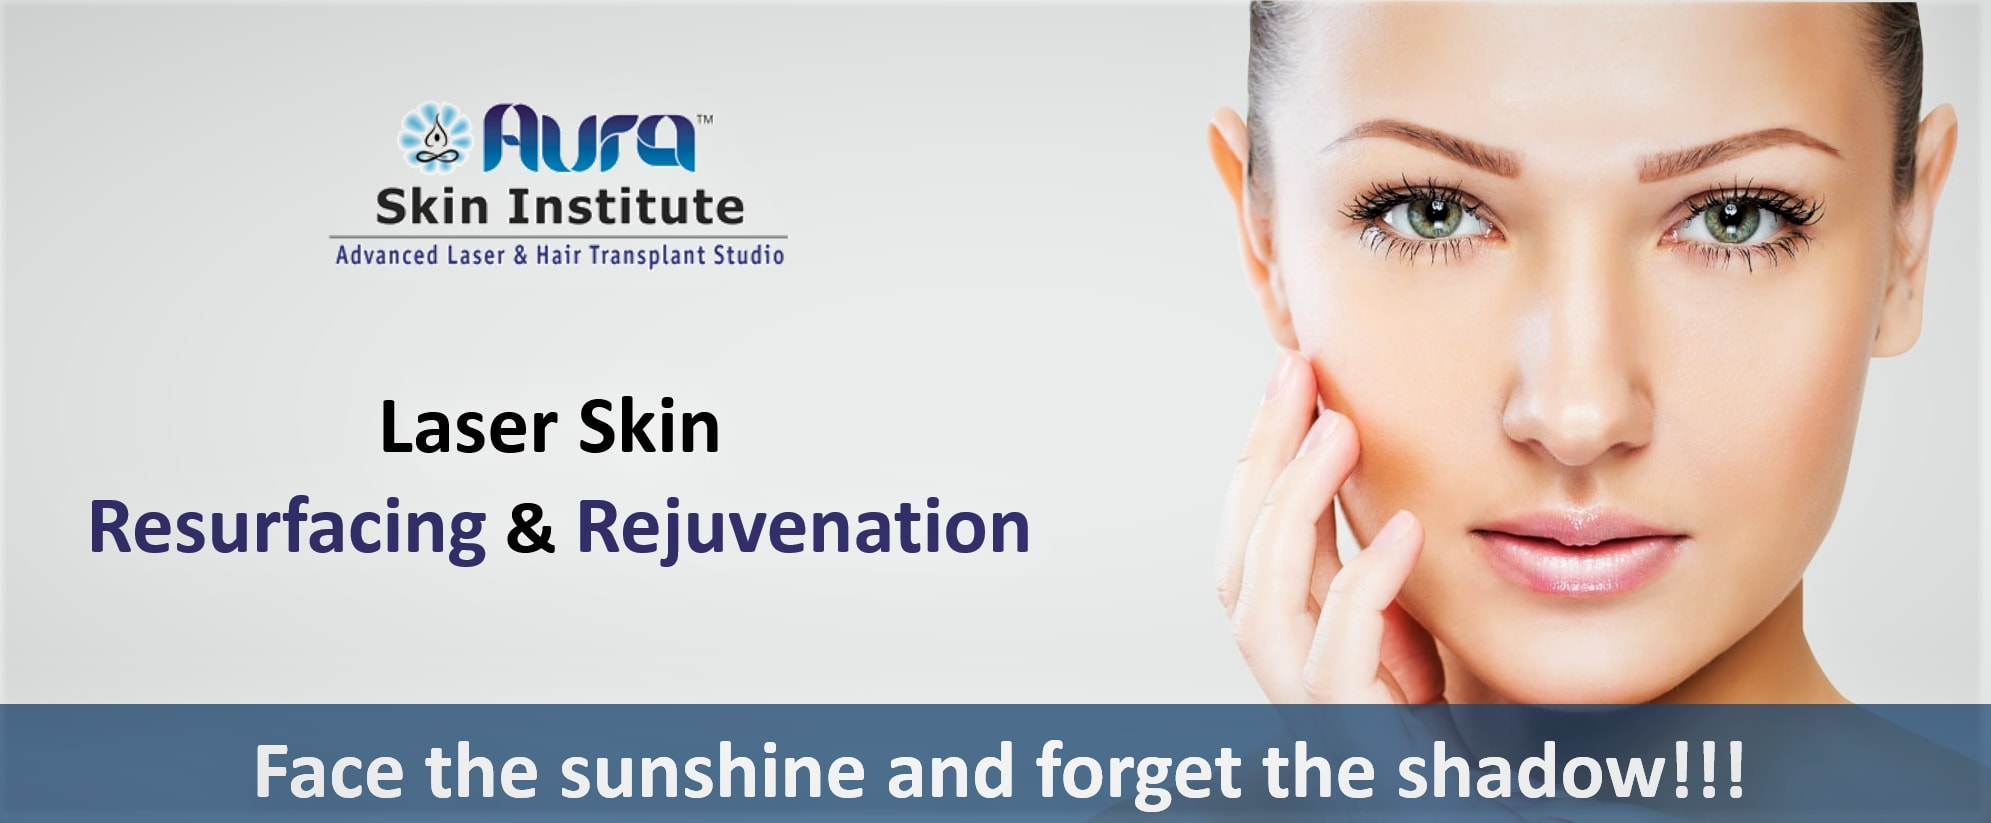 Cost of Laser Skin Resurfacing in India